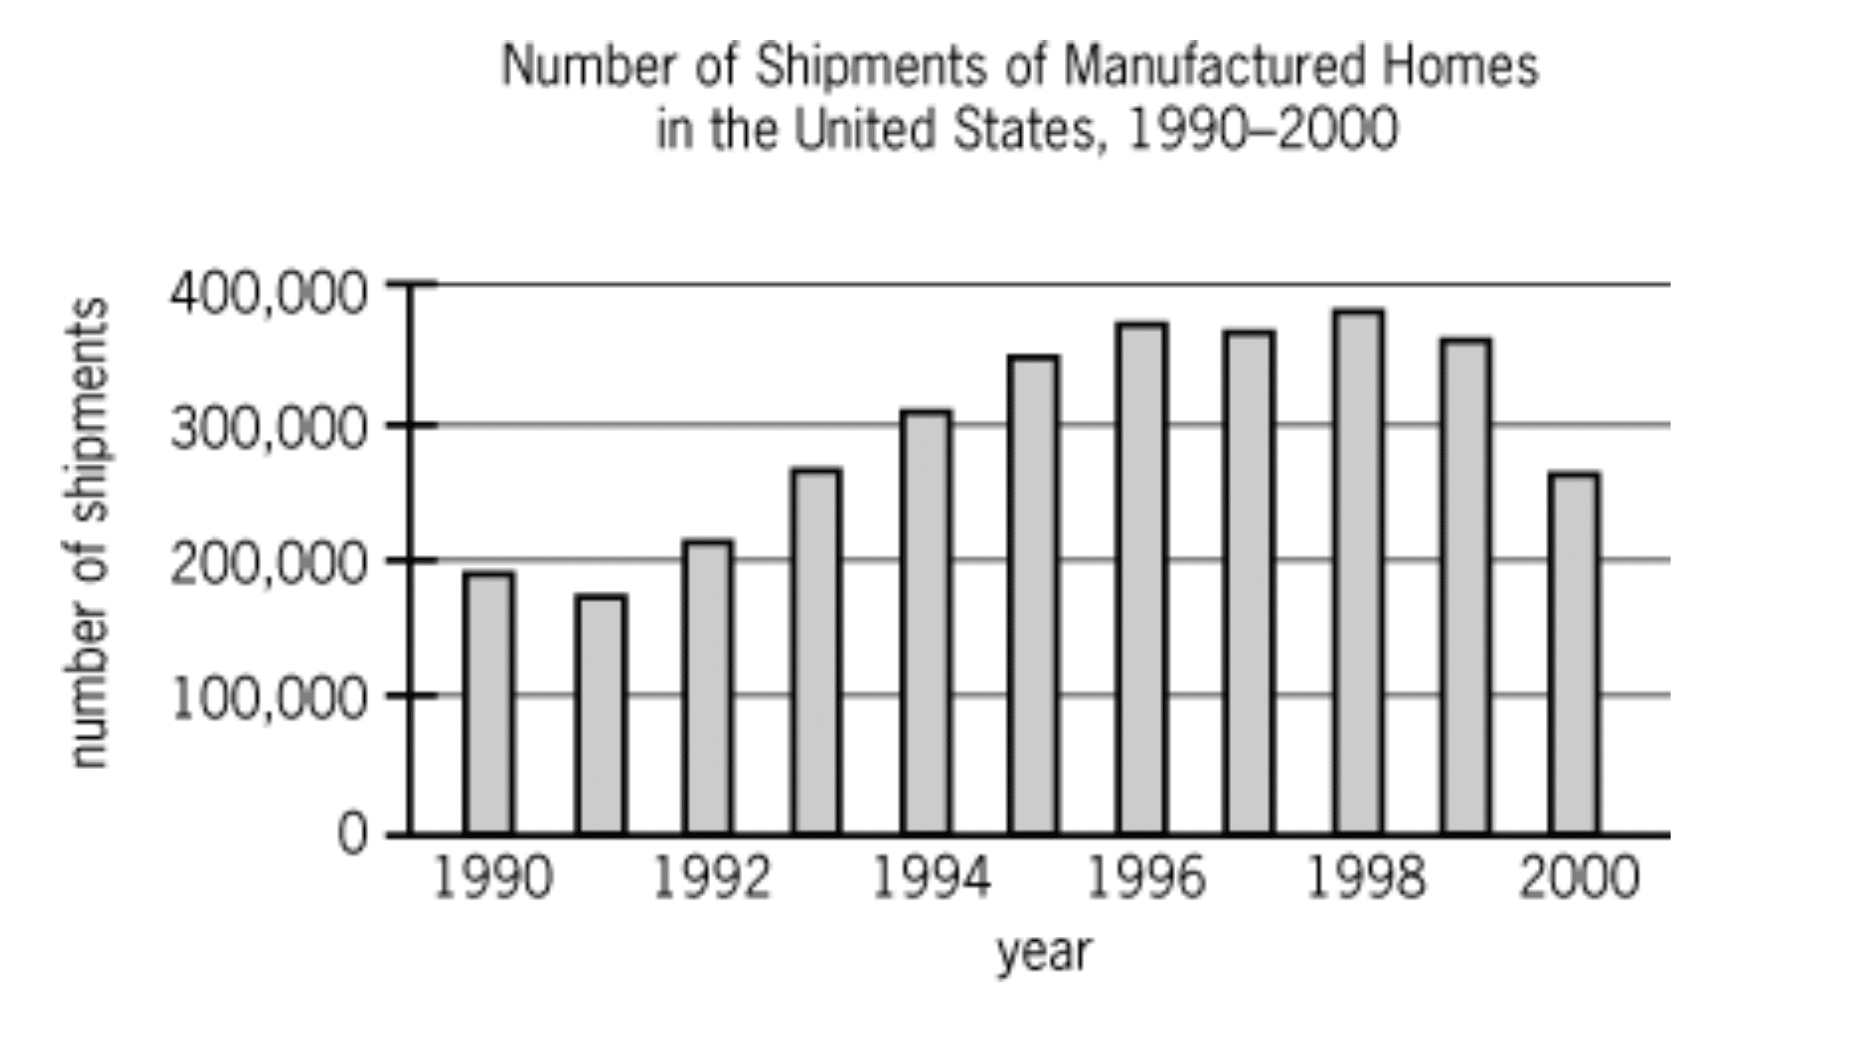 According to the chart shown, which of the following is closest to the median annual number of shipments of manufactured homes diagram